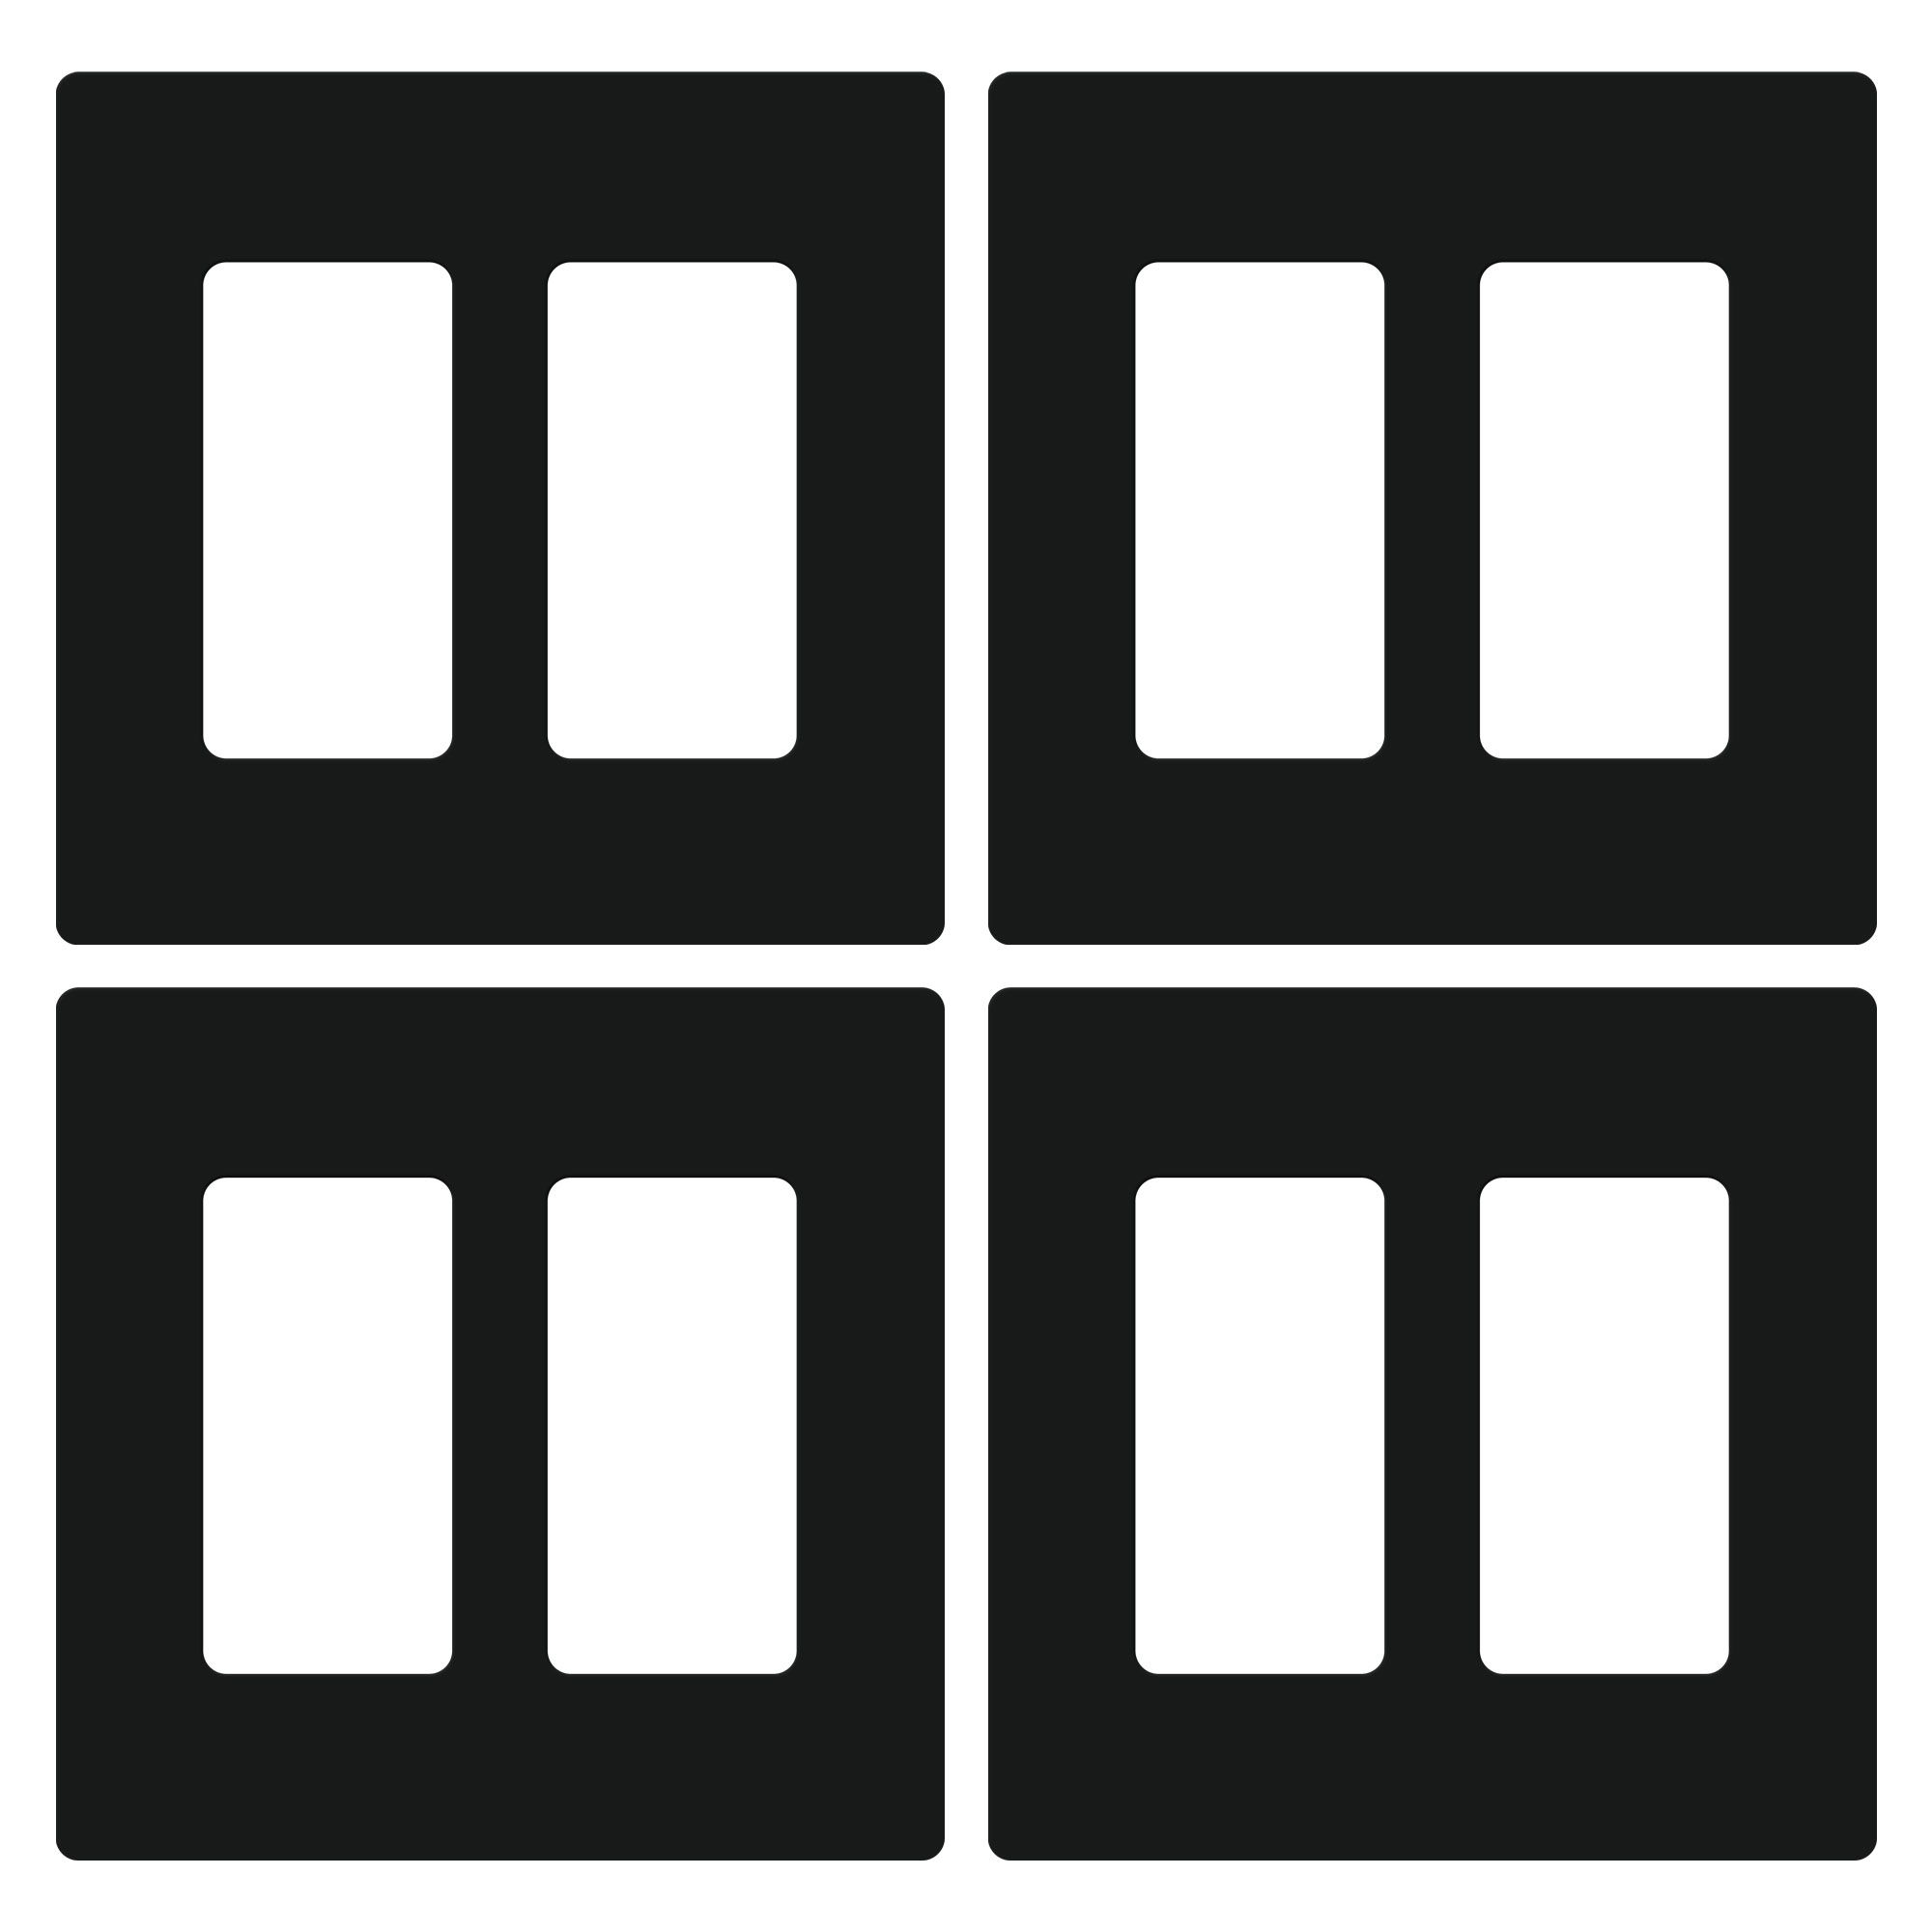 lutron claro dimensions 95 jeep grand cherokee wiper wiring diagram set of 4 two gang wallplates black tools